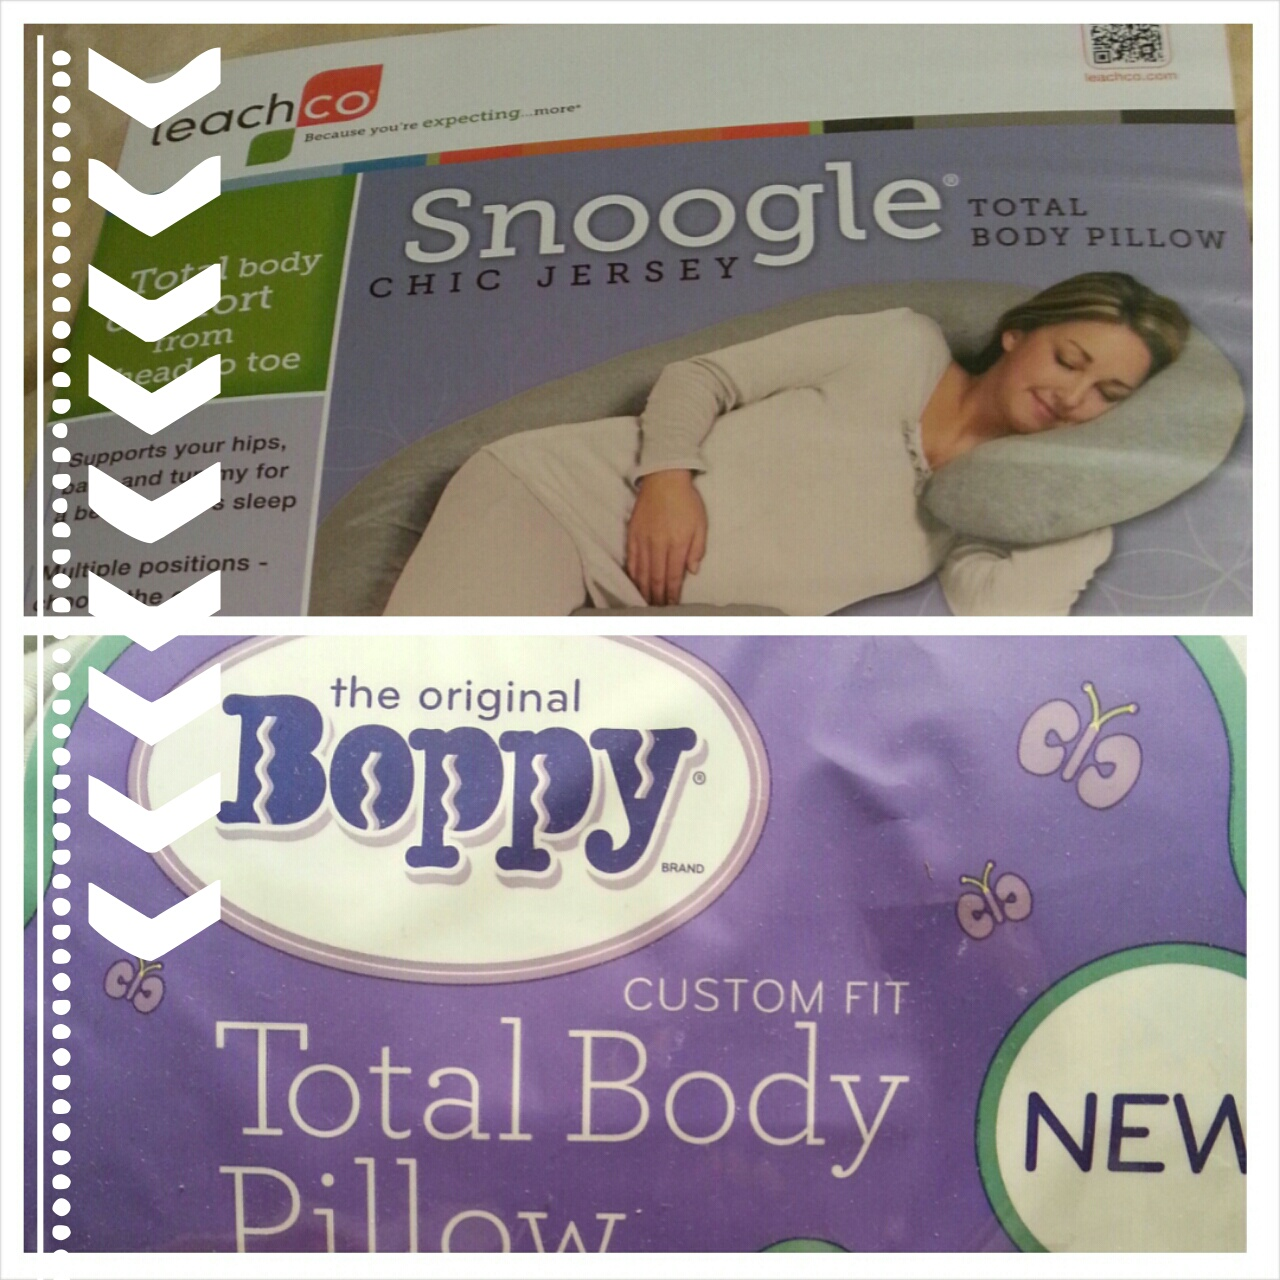 Boppy Pregnancy Pillow vs. DIY Pregnancy Pillow vs. Boppy Headrest